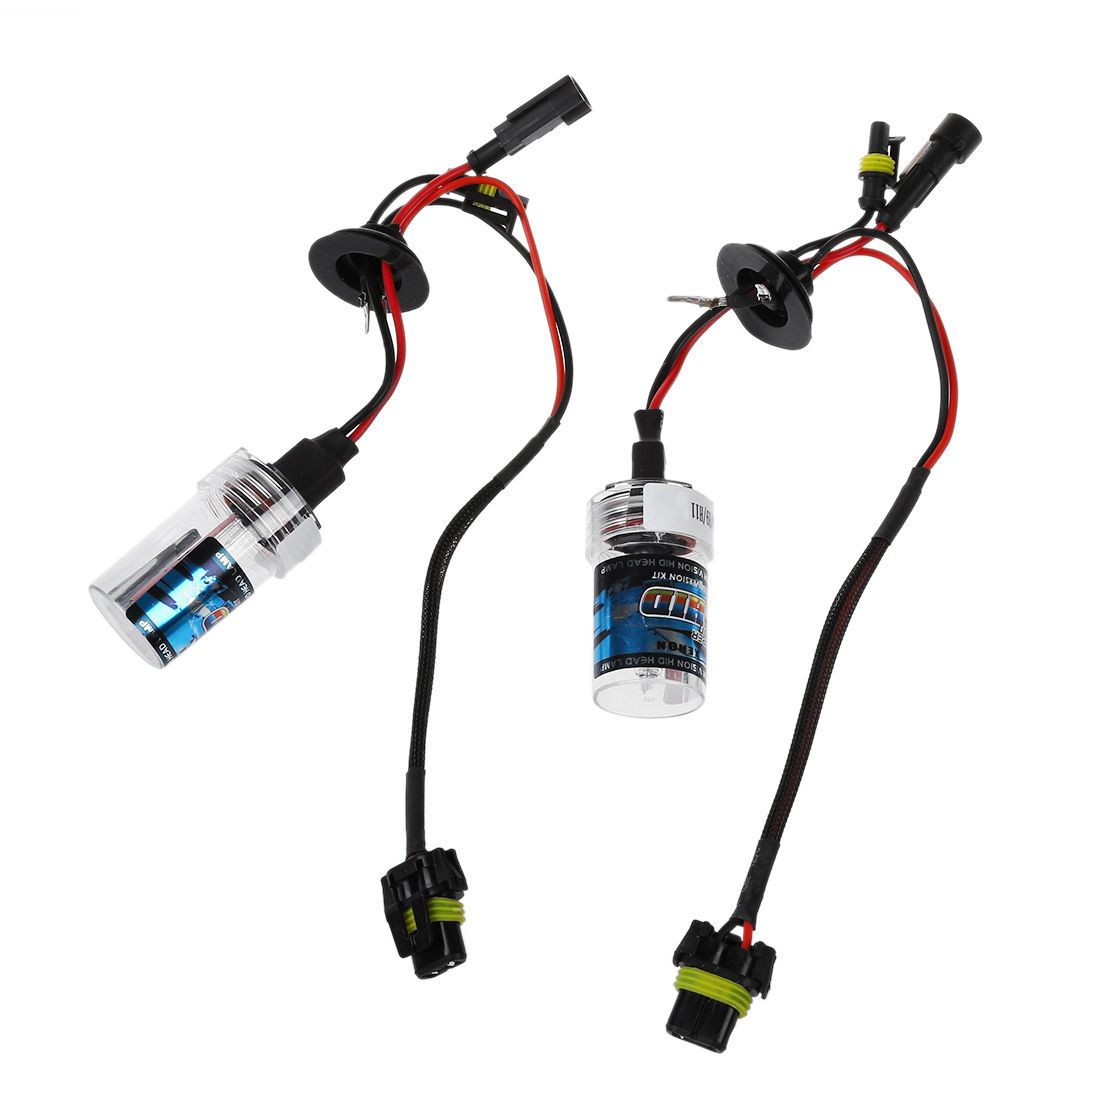 2 Stk 55w Hid Xenon Lamp Car Bulb Light Lamp Kit Headlight